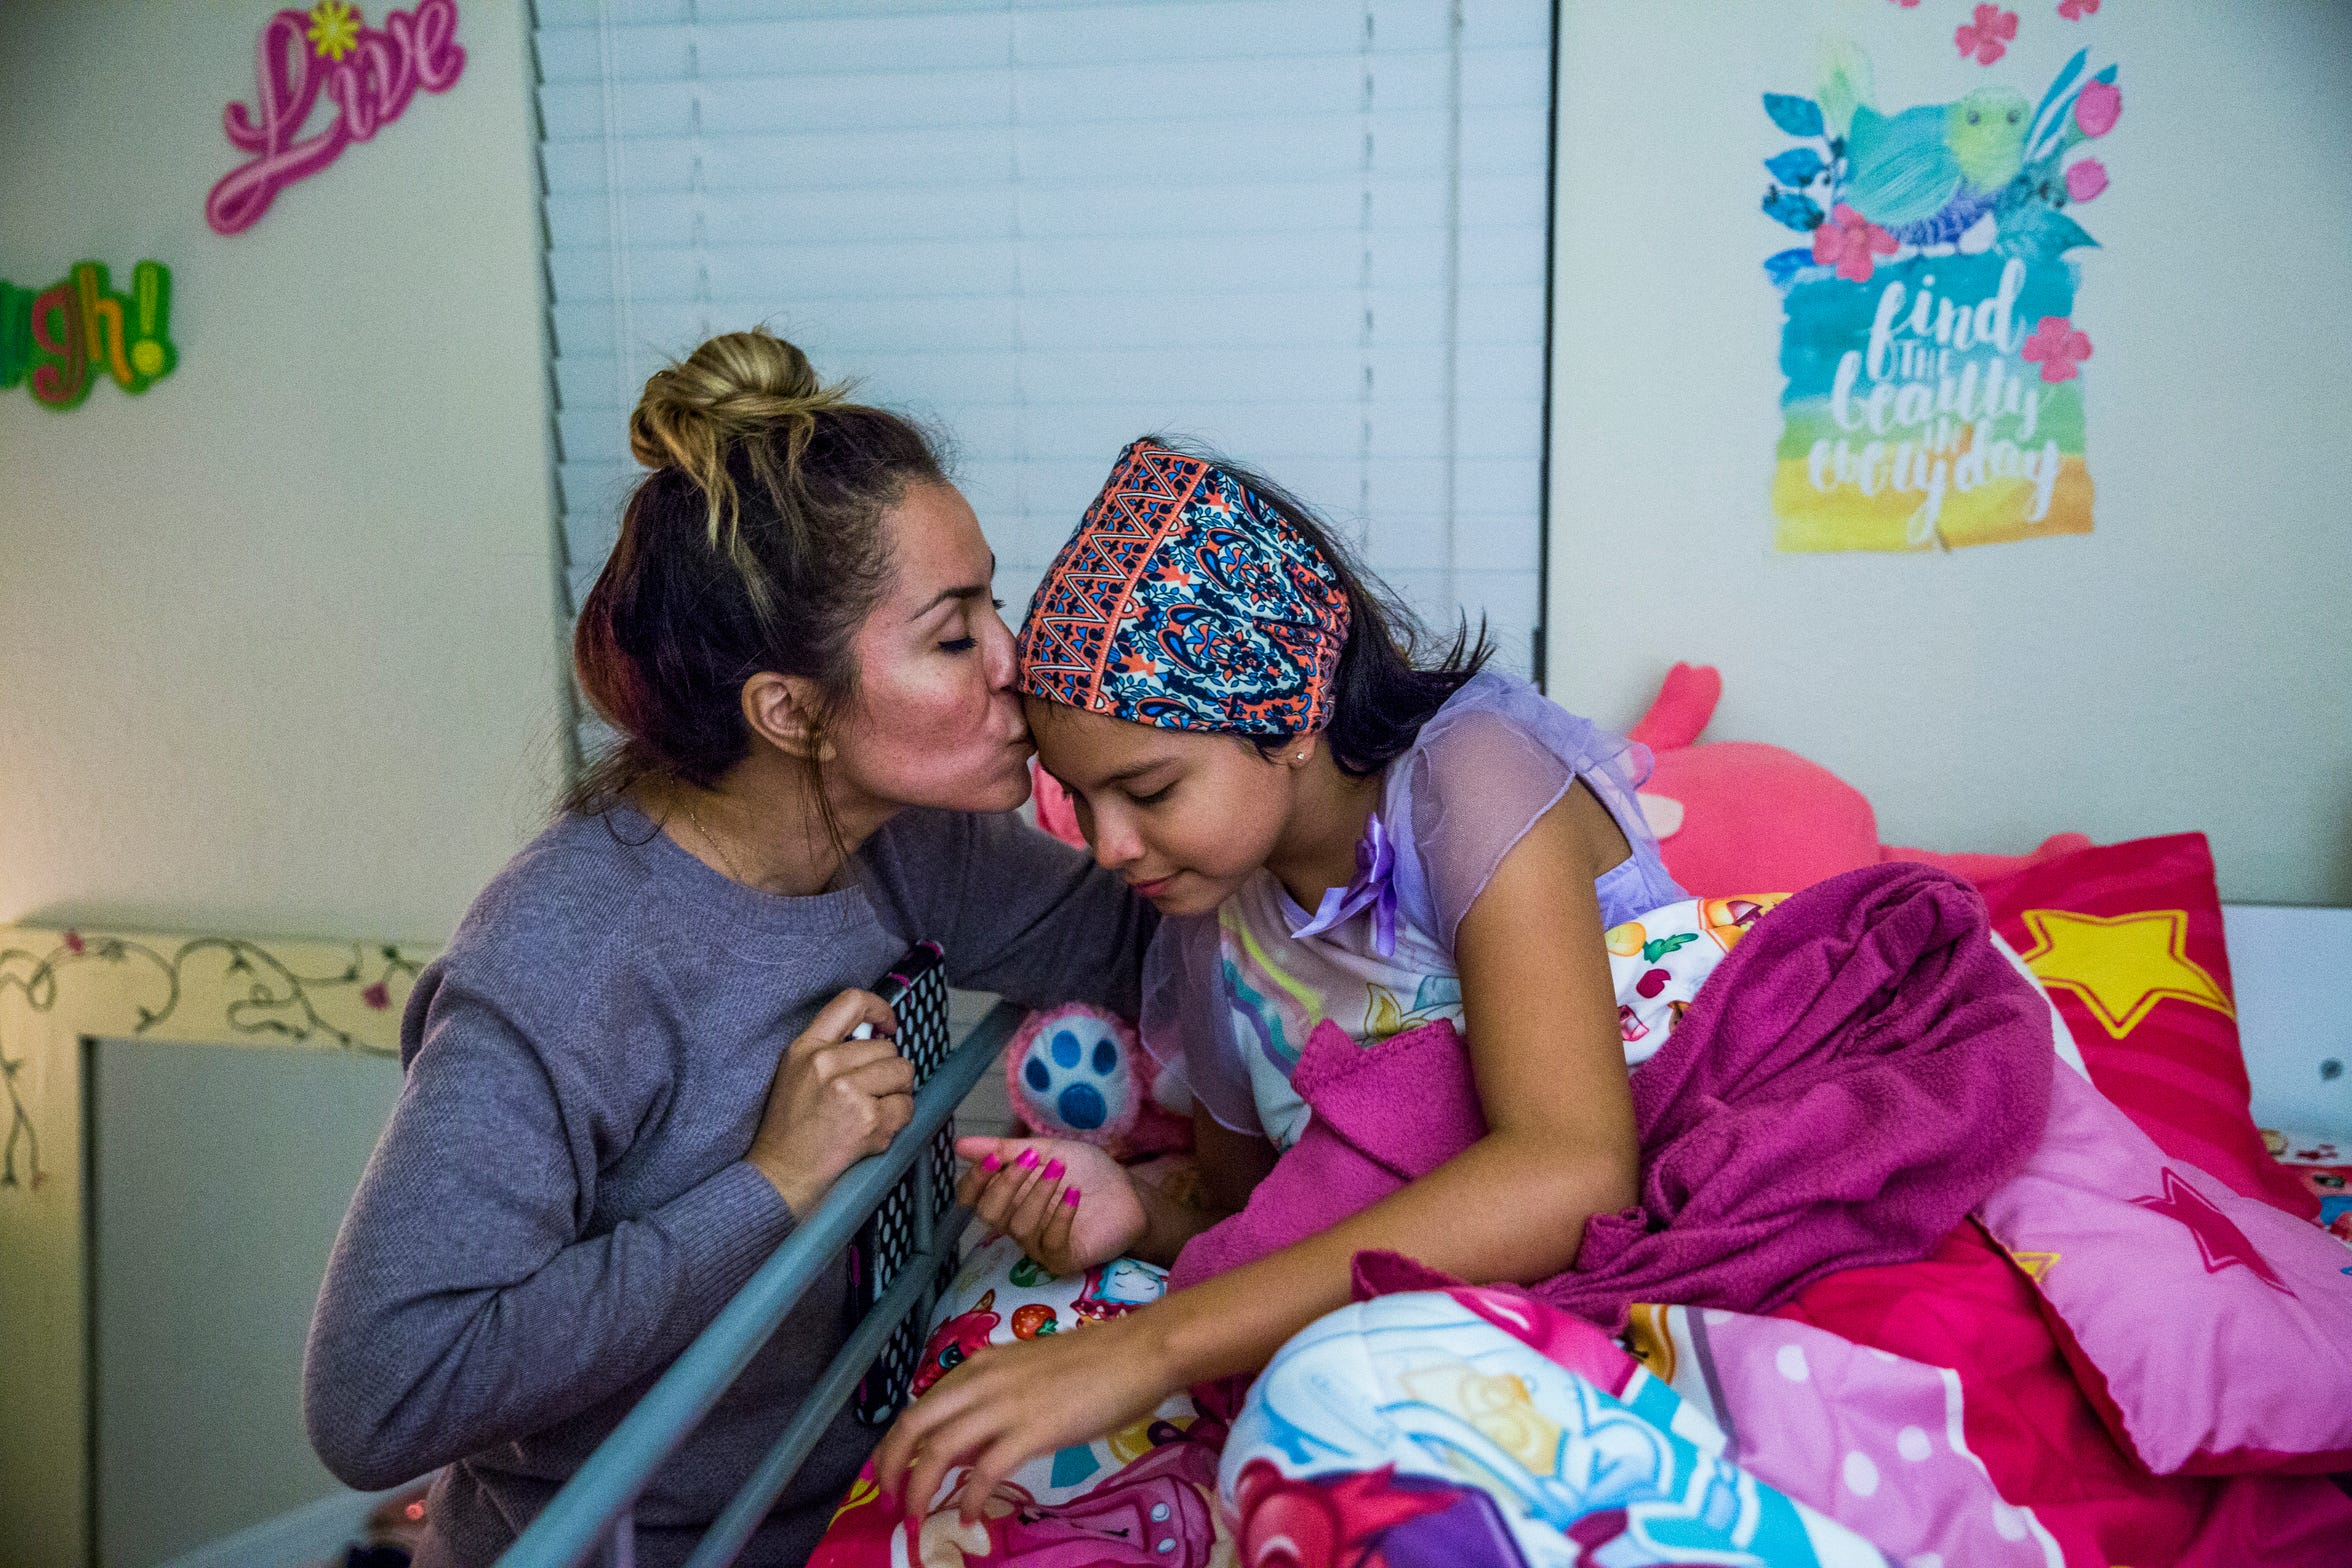 Marcela Guimoye kisses her daughter Camila Chang, 11, goodnight in their North Naples home on Tuesday, Aug. 14, 2018.